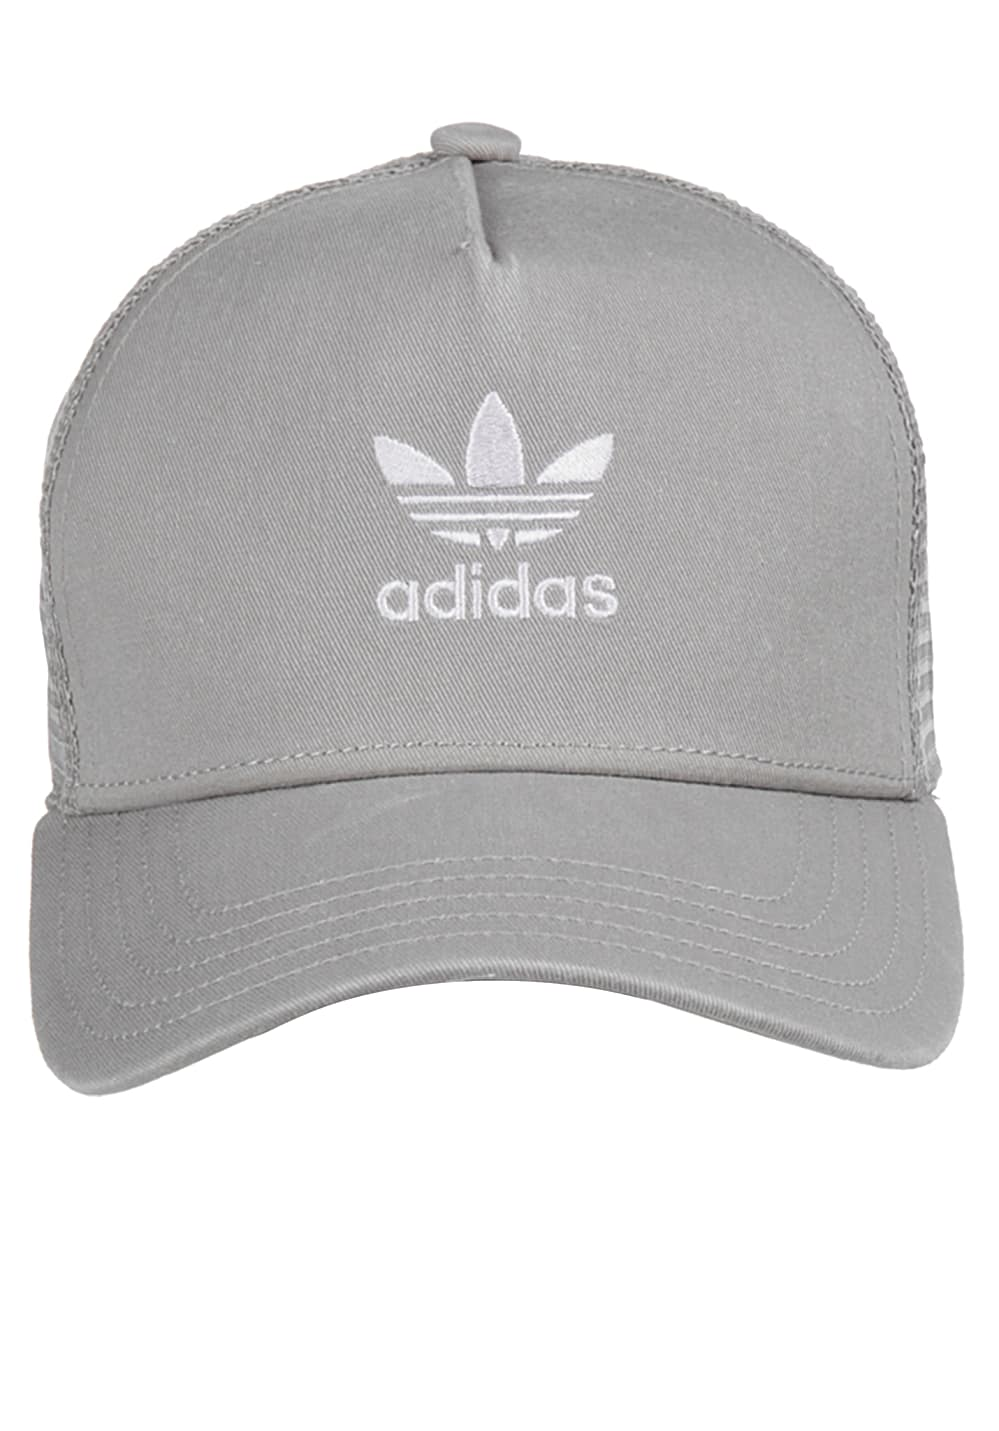 7ce77a33a ADIDAS ORIGINALS Trefoil - Trucker Cap for Men - Grey